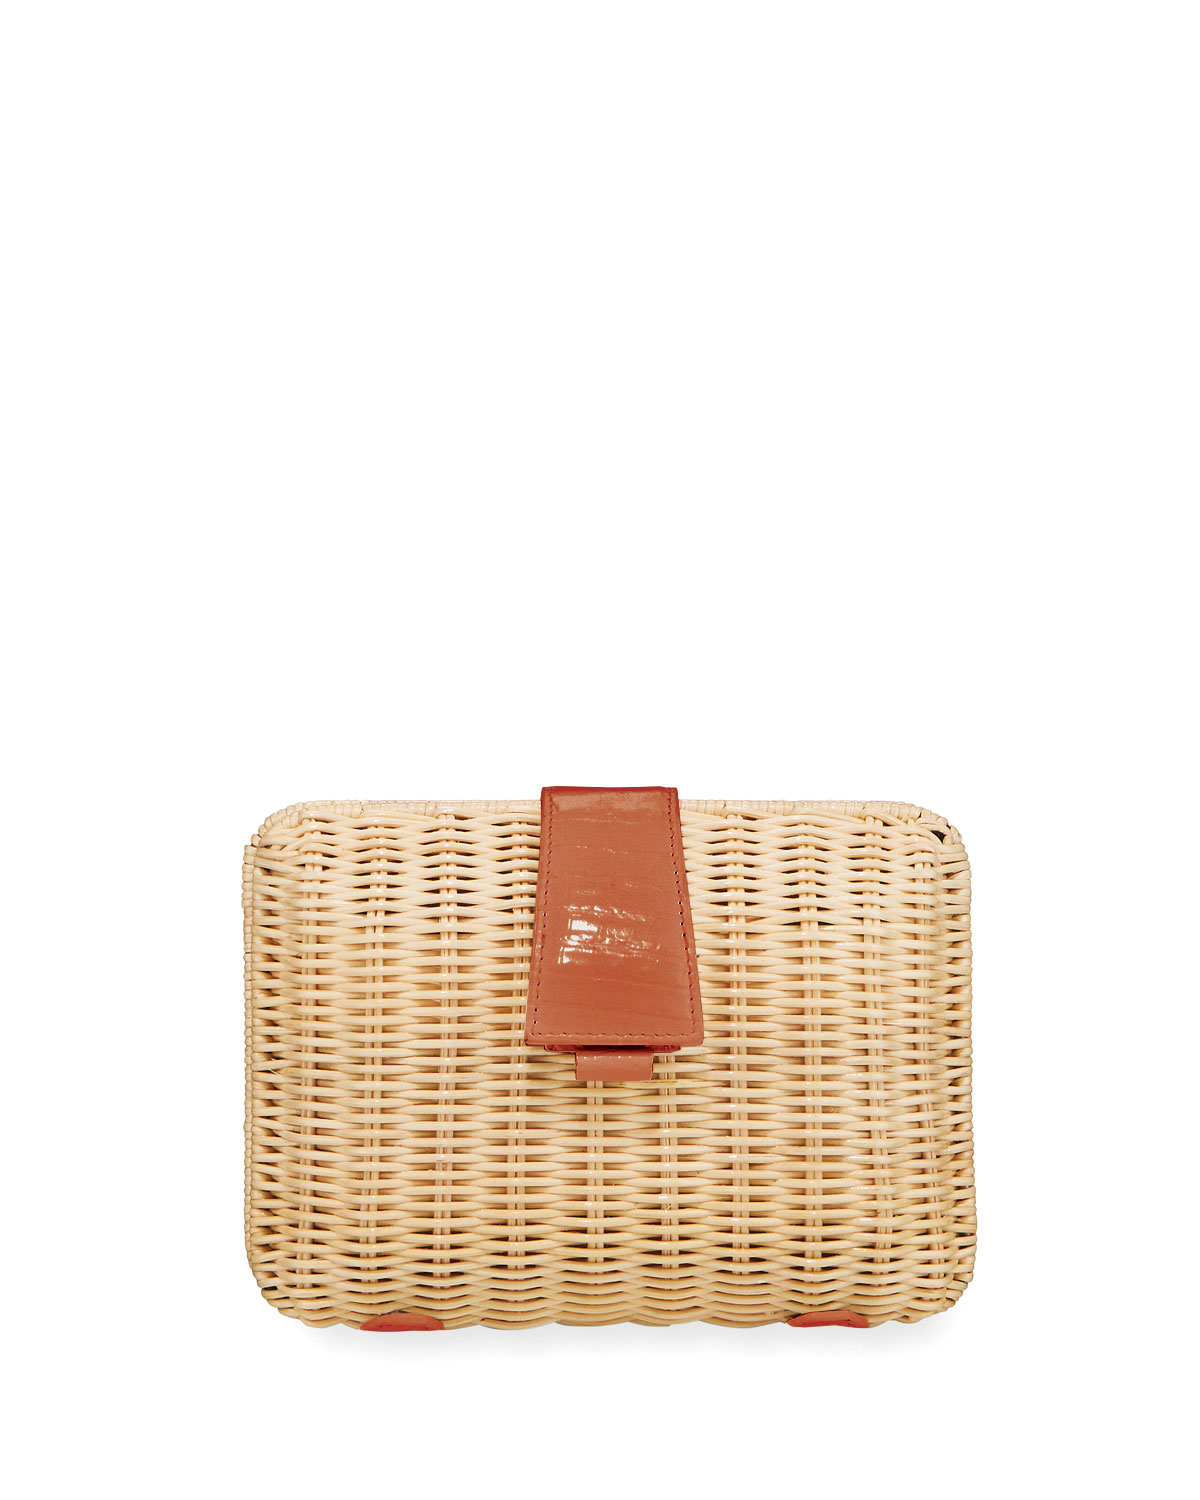 Nancy Gonzalez Clutch WICKER & CROCODILE SMALL CLUTCH BAG